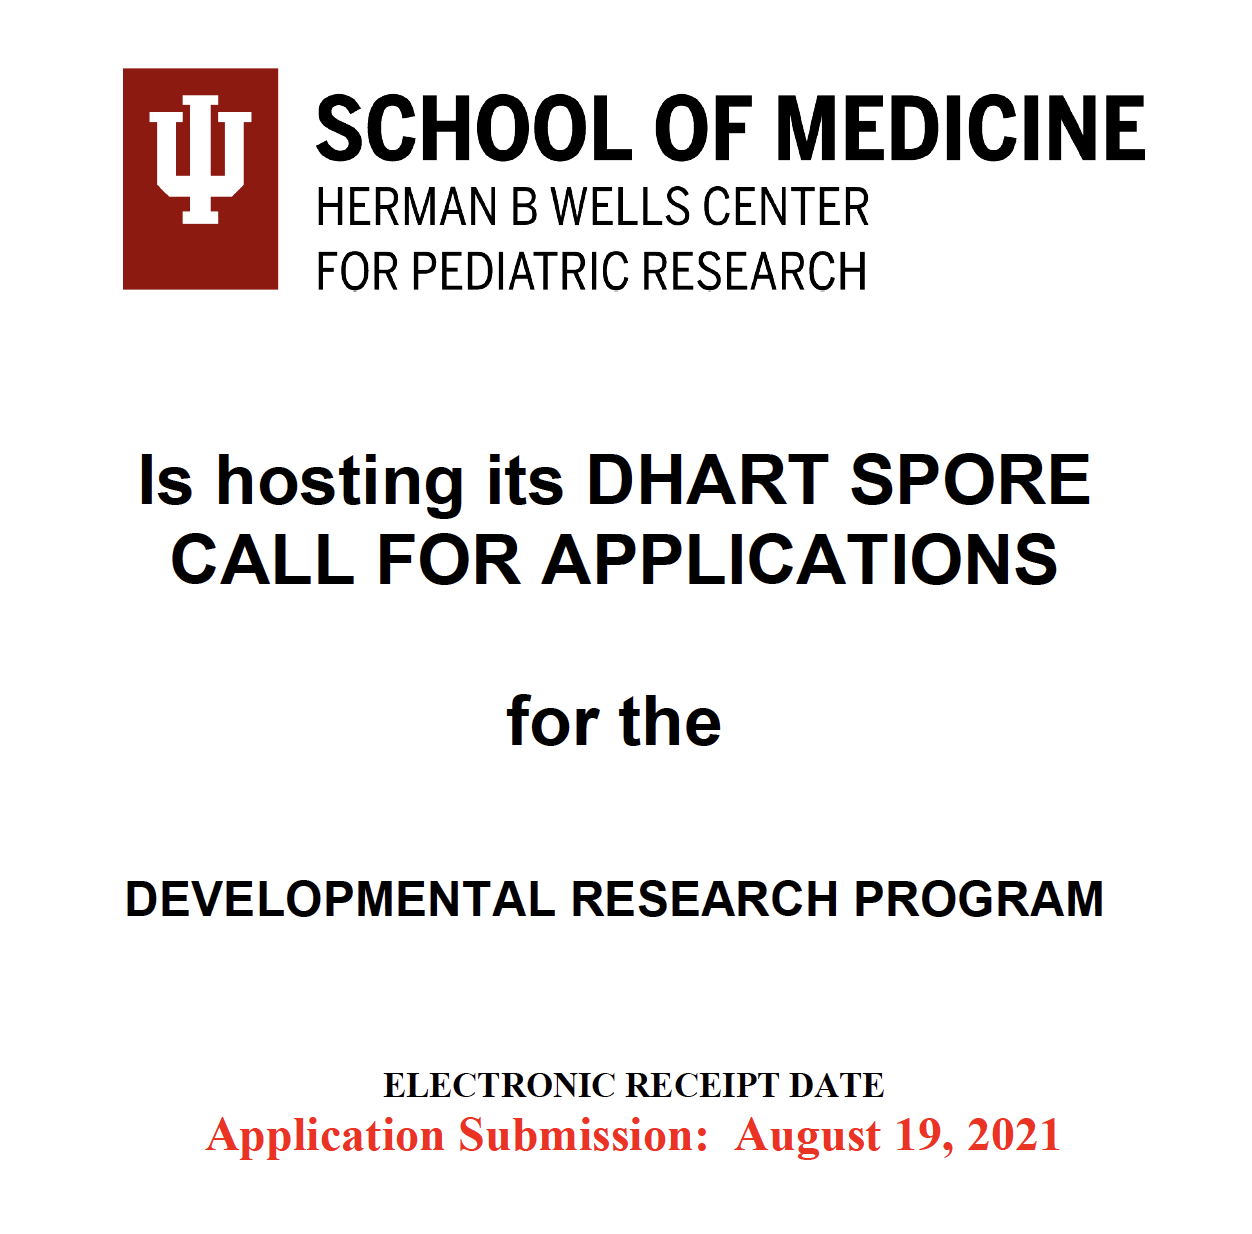 DHART SPORE DRP 2021 Call for Applications